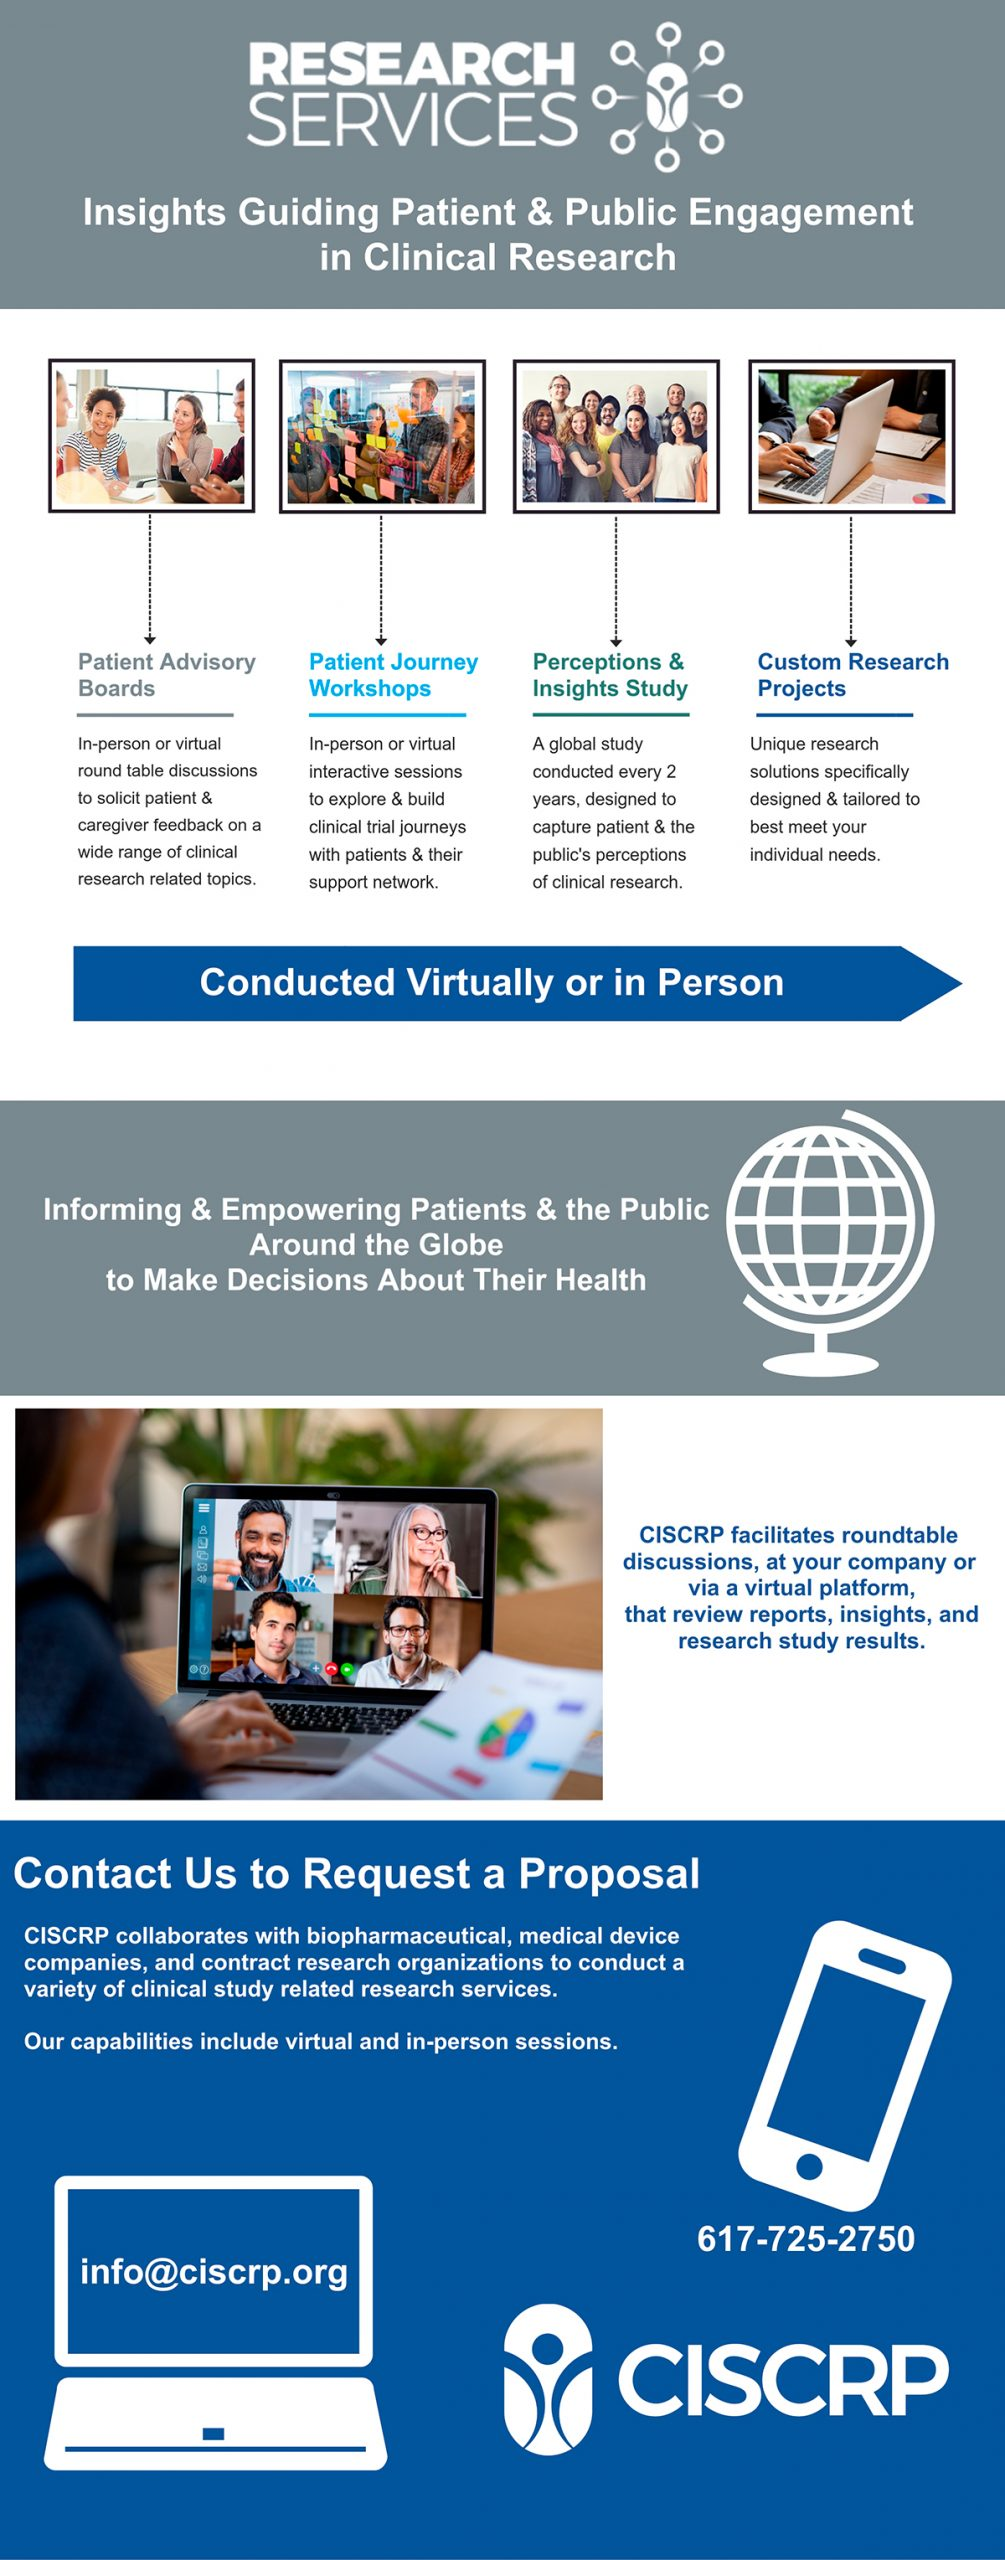 A grey and blue informational infographic about Research Services